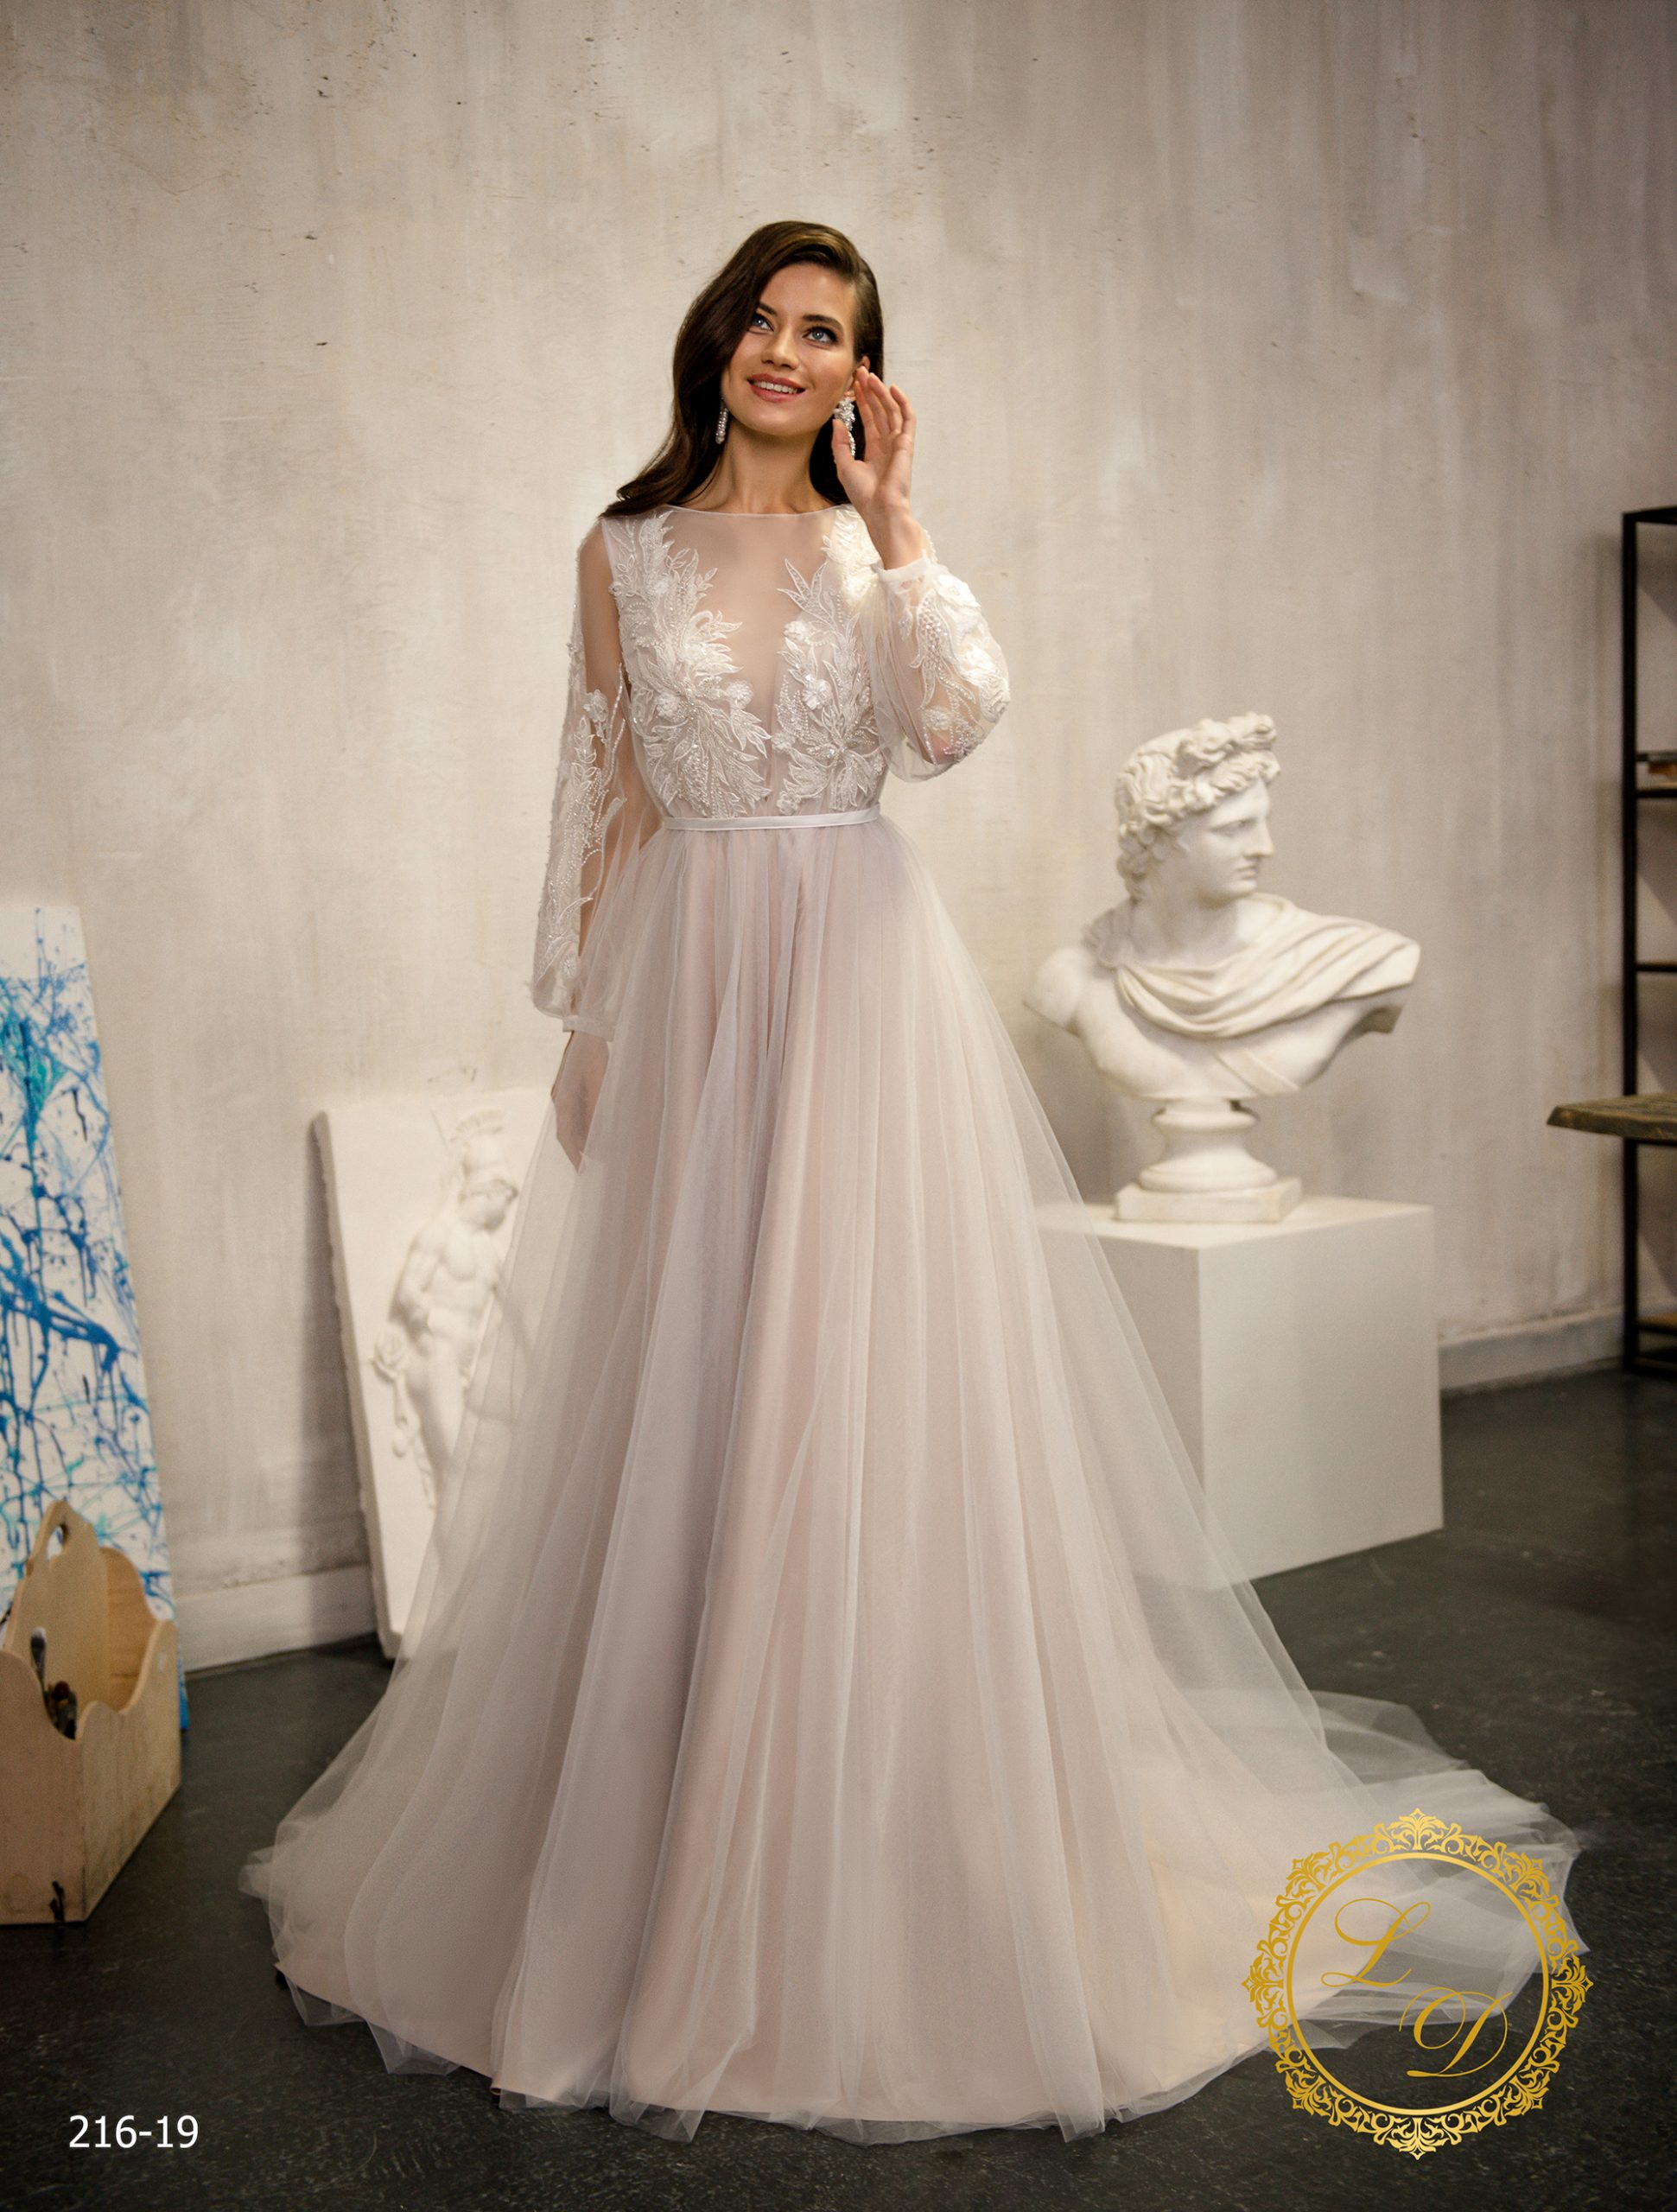 wedding-dress-216-19-1